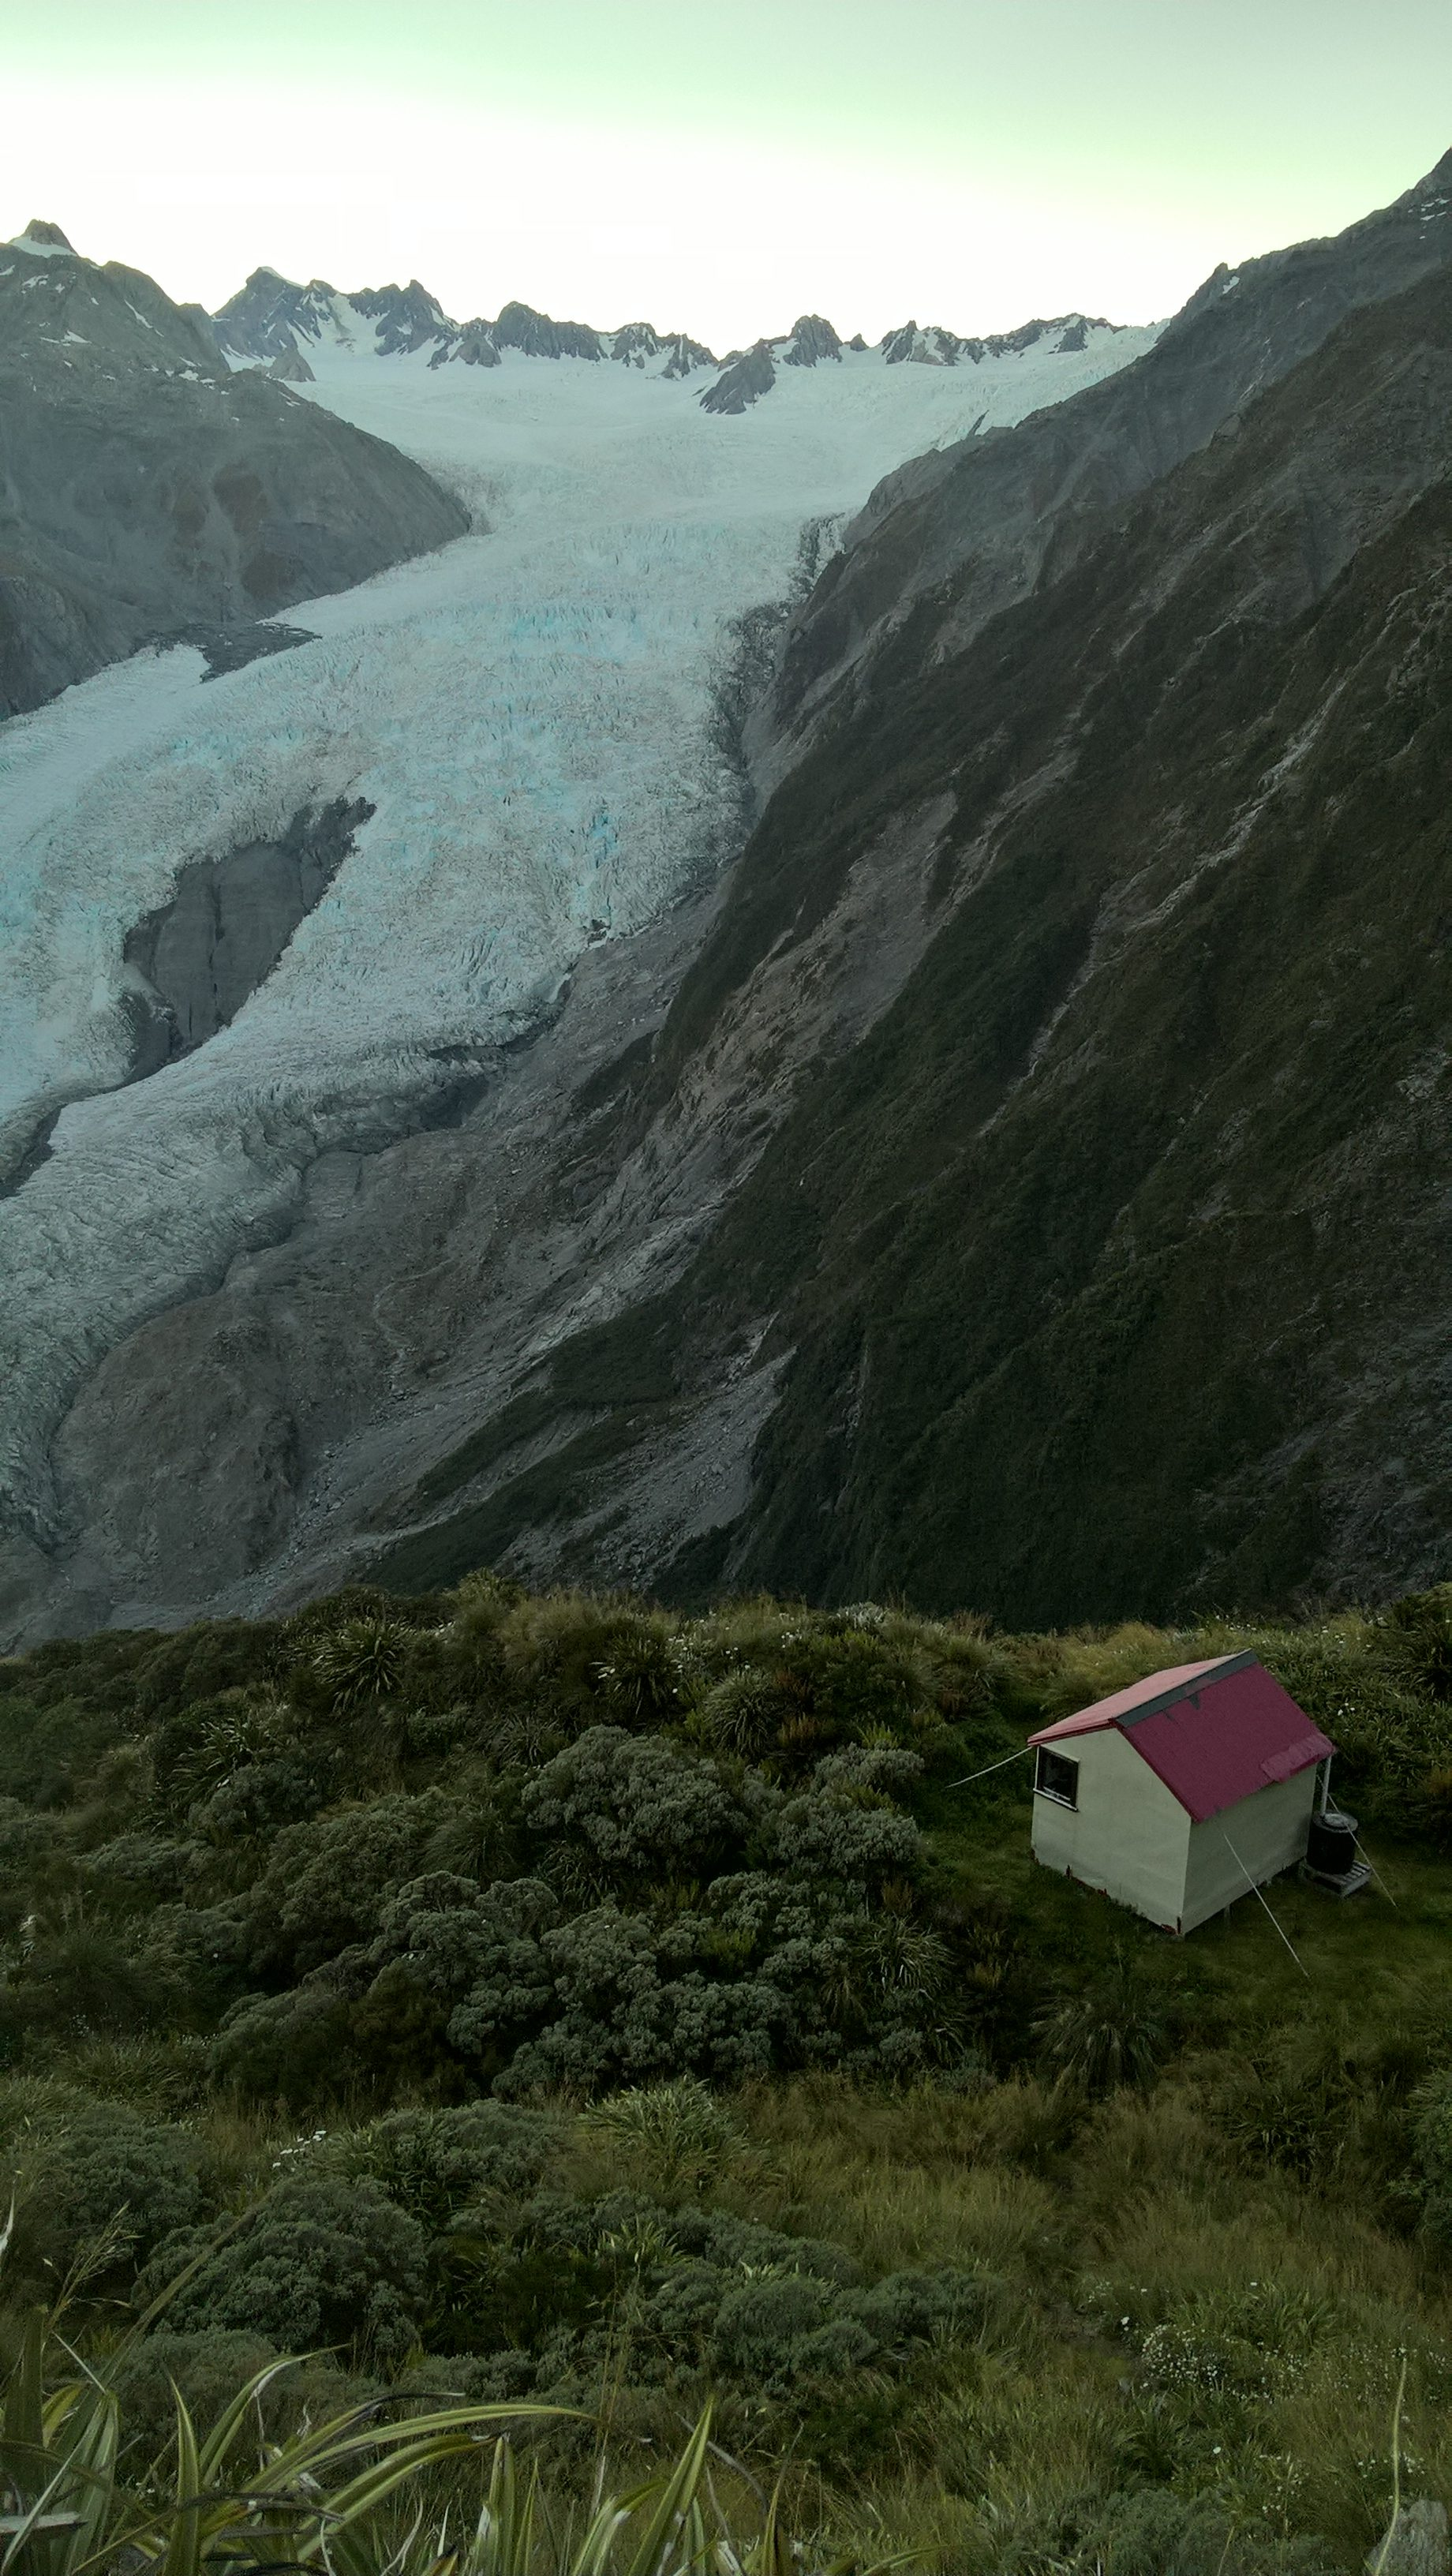 A glacier coming down the side of a mountain with a cream hut and a red roof in the foreground